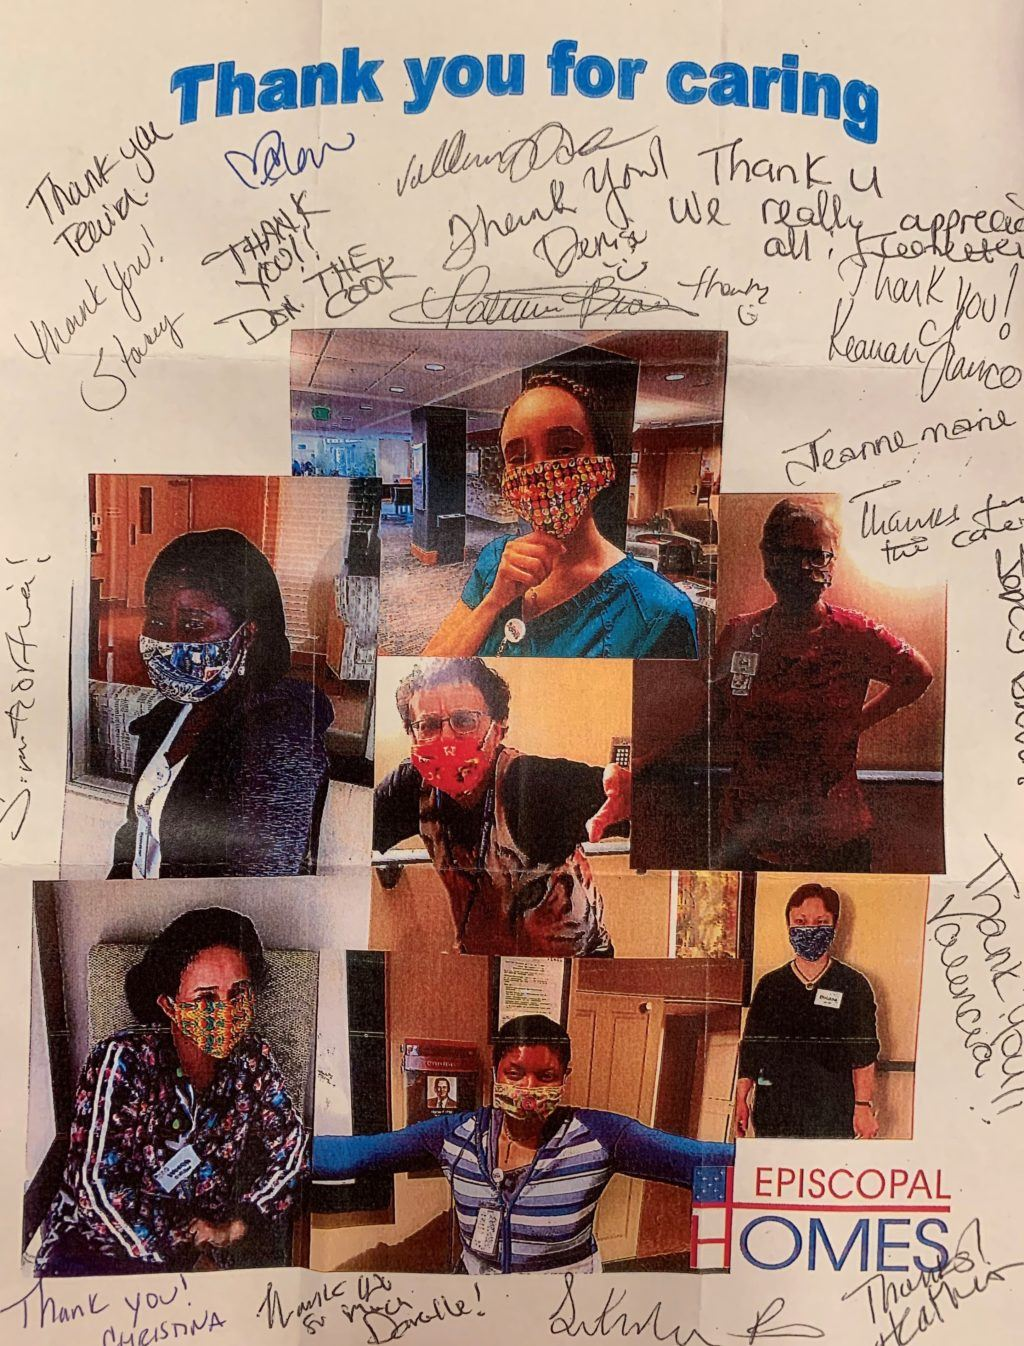 Thank you note signed by Episcopal Homes staff with photos of employees in masks made by volunteers